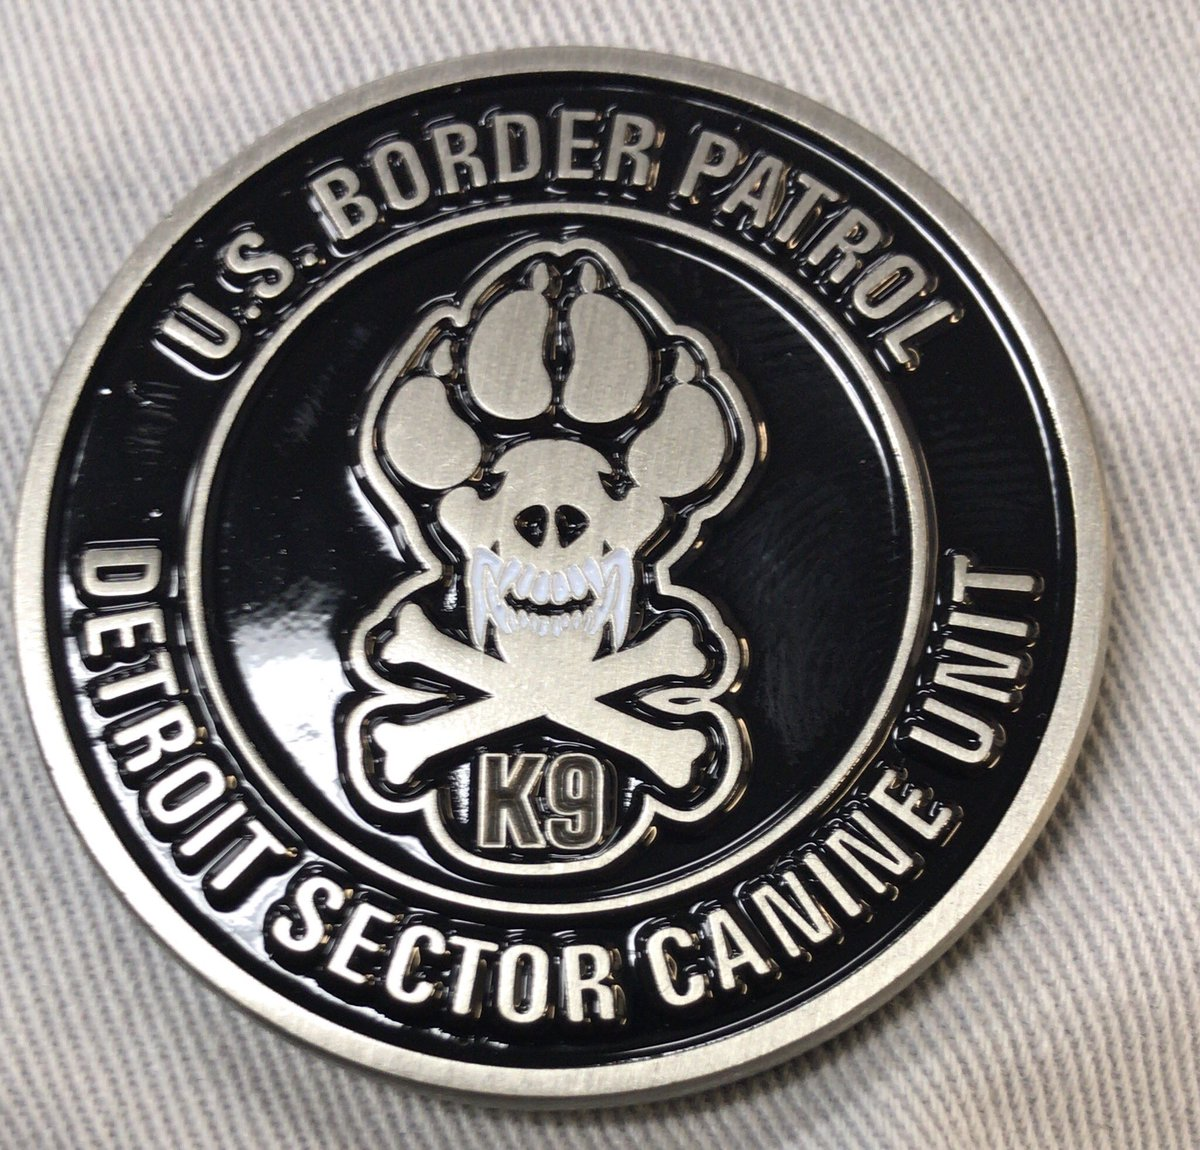 Looks like no one wants this challenge coin. 31 to go! Let's make it happen. #LivePD #LivePDFriday #LivePDNation #9PMRoutine #LivePDBingo #LivePDFantasyLG #Police #K9 #FridayNightLights #FridayFeeling #Policia #2A #BackTheBlue<br>http://pic.twitter.com/bieTw89pmE